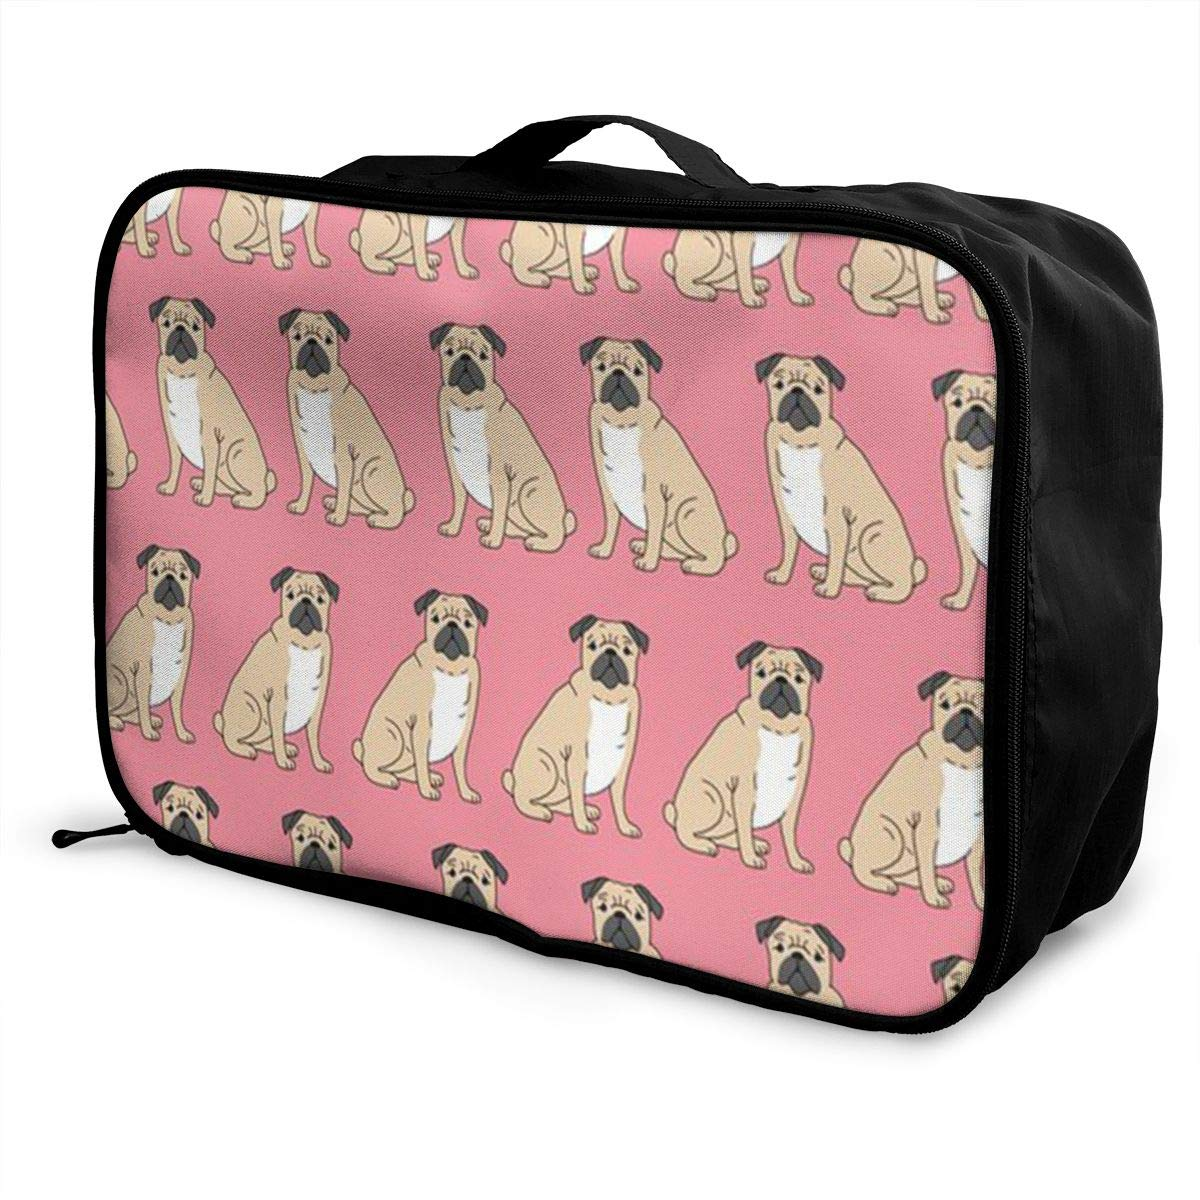 ADGAI Pug Sitting Pink Canvas Travel Weekender Bag,Fashion Custom Lightweight Large Capacity Portable Luggage Bag,Suitcase Trolley Bag